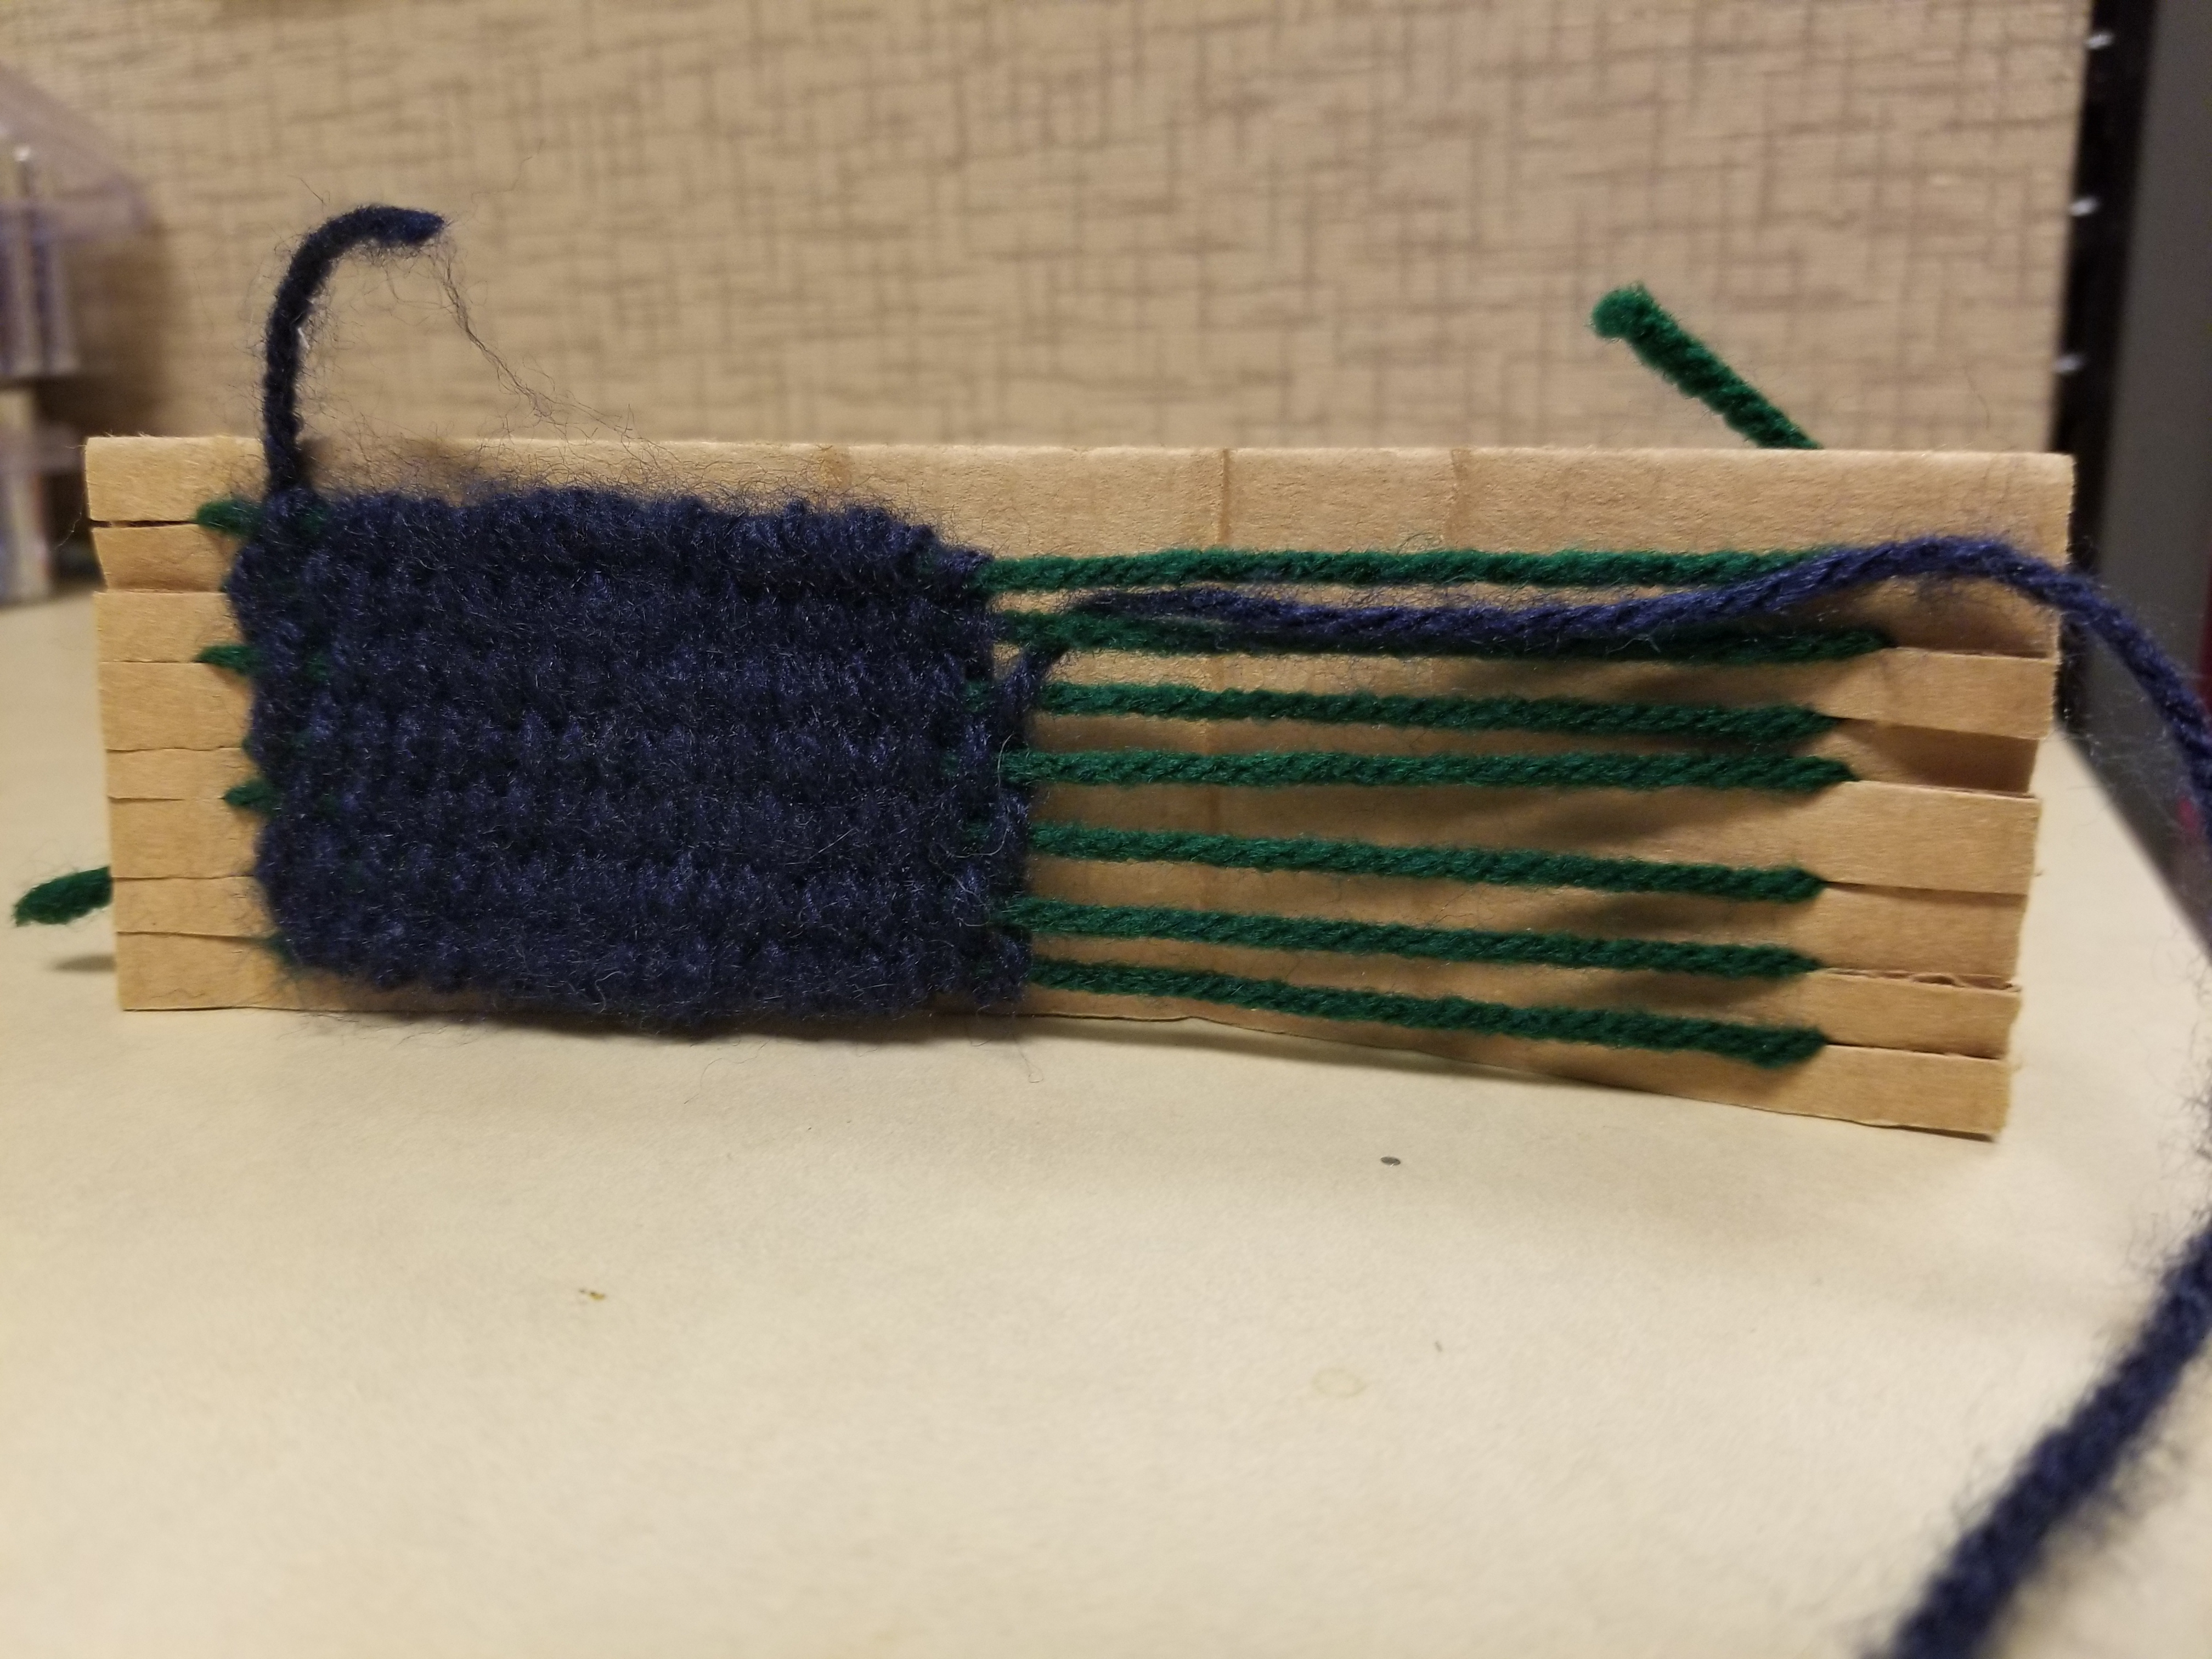 Sample weaving craft